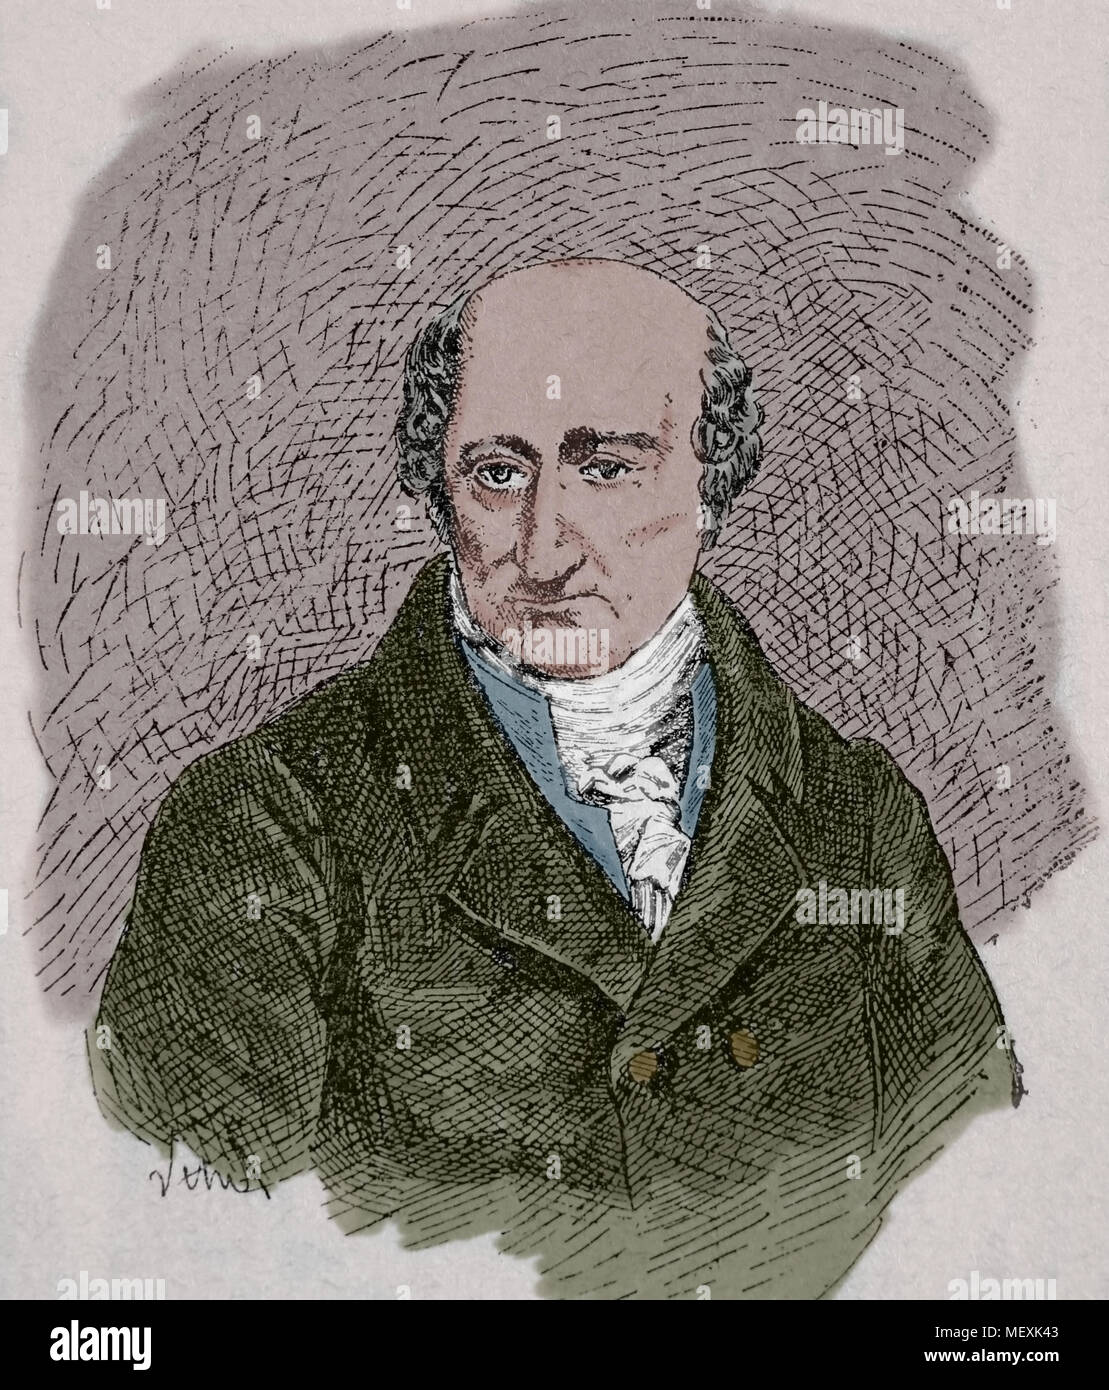 Baron vom Stein (1757-1831). Prussian statesman. Engraving, portrait. Color. 19th century. - Stock Image